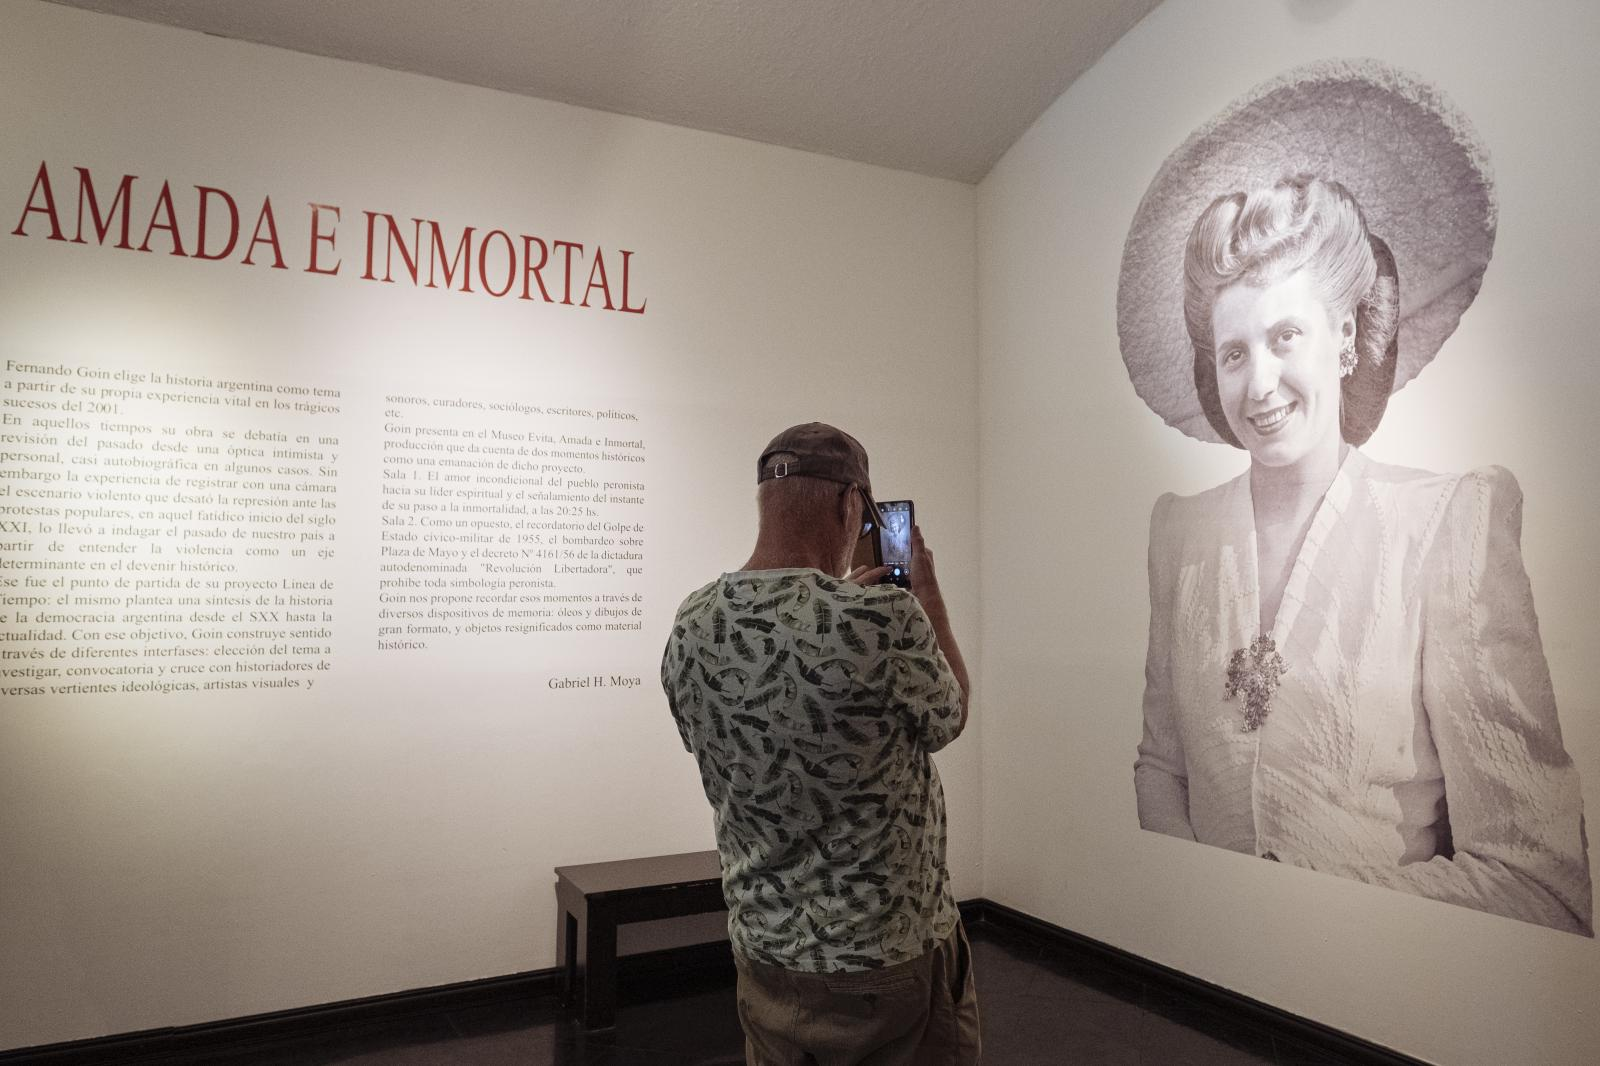 A visitor takes a photograph of an Eva Perón's portrait at Evita's Museum, Buenos Aires, Argentina, on Saturday, Dec. 7, 2019.